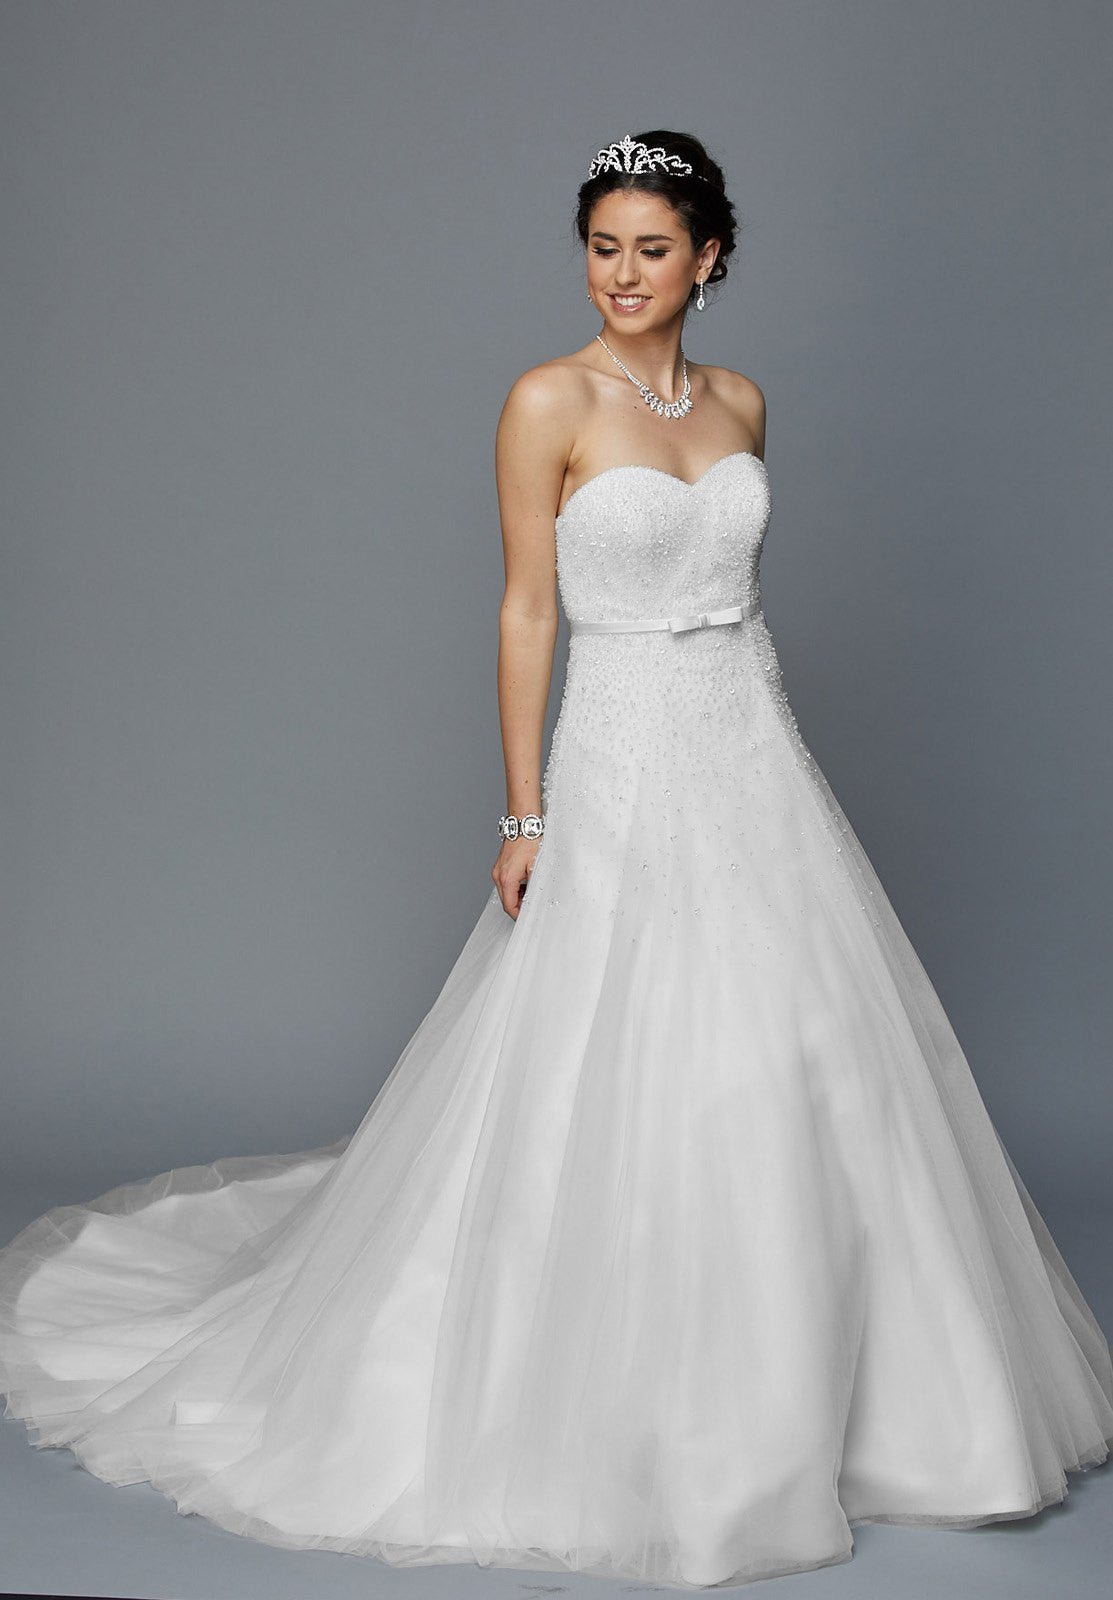 Juliet 355 Embellished Bodice Strapless Wedding Gown Ivory ...